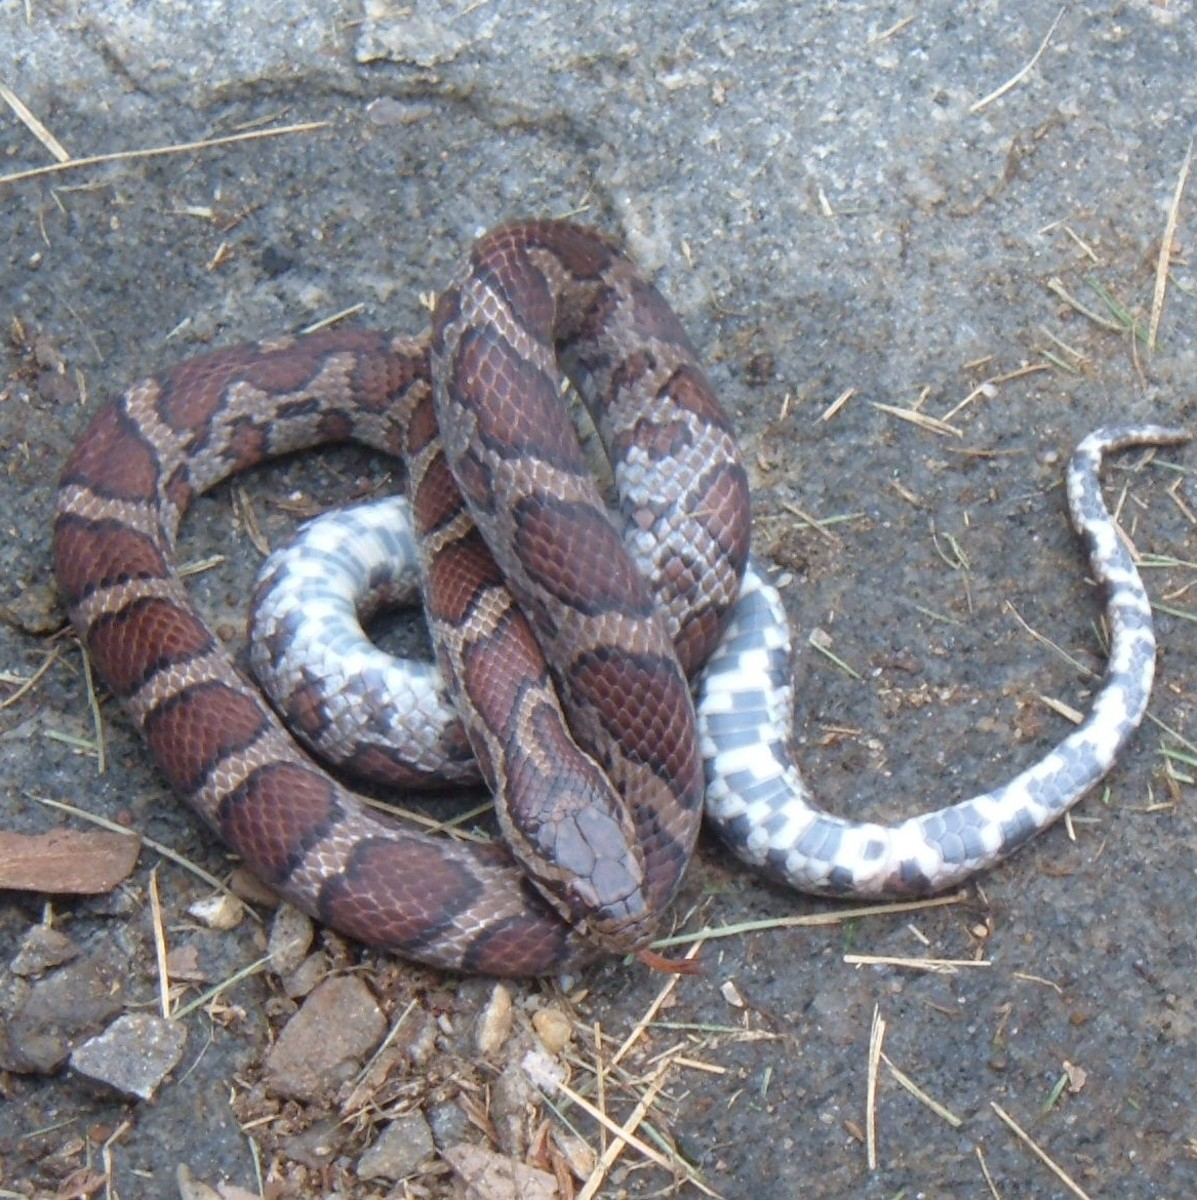 Milk Snakes have beautiful patterns. The mottled underside clearly shows this is a milk snake -- and not a poisonous copperhead